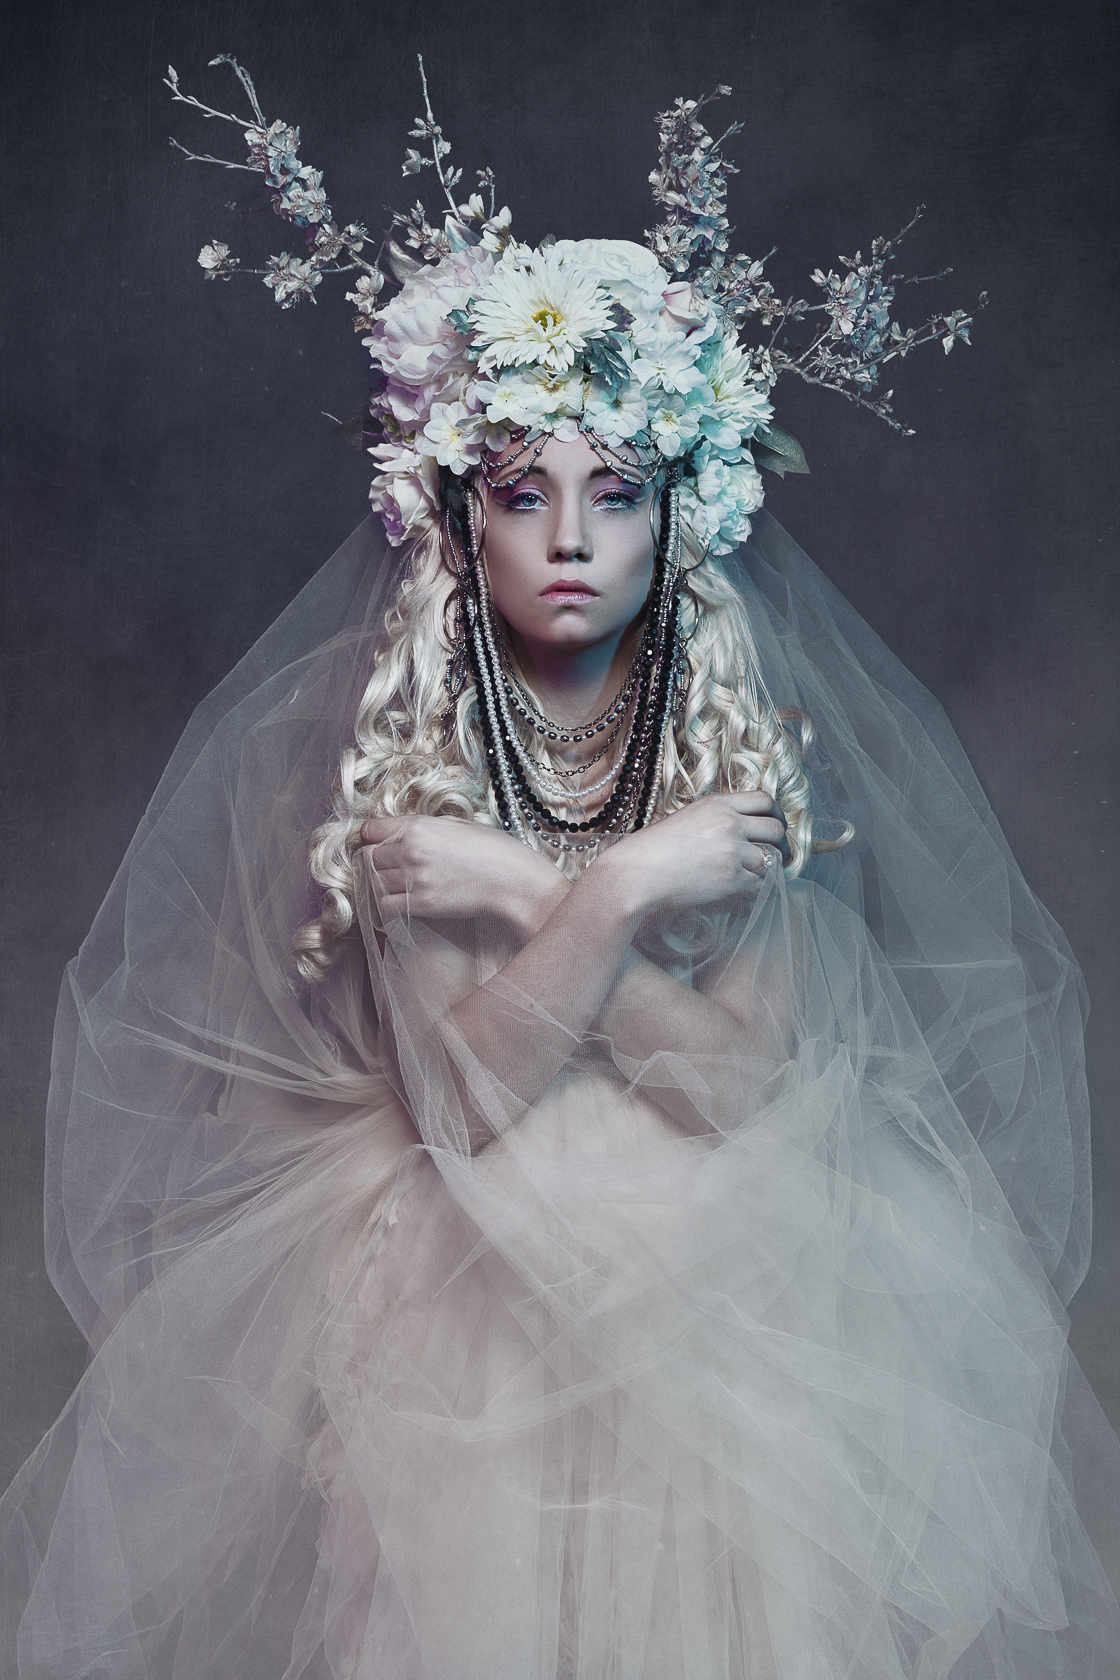 Pascal Latil - Emie - hair Christophe Pujol - makeup Aline Carpentier - headpiece by photog